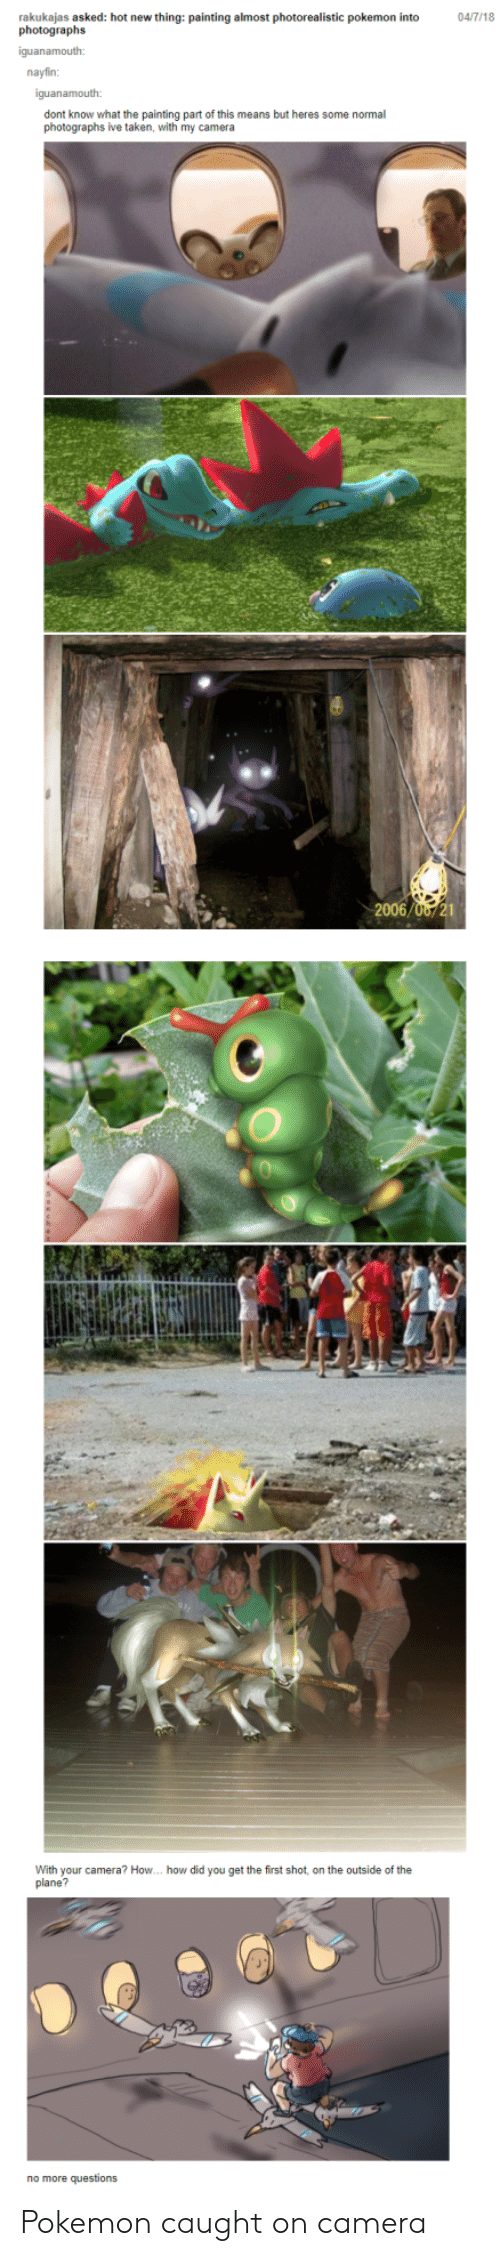 Pokemon, Taken, and Camera: rakukajas asked: hot new thing: painting almost photorealistic pokemon into  photographs  04/7/18  nayfin:  dont know what the painting part of this means but heres some normal  photographs ive taken, with my camera  With your camera? How. how did you get the first shot, on the outside of the  plane?  no more questions Pokemon caught on camera